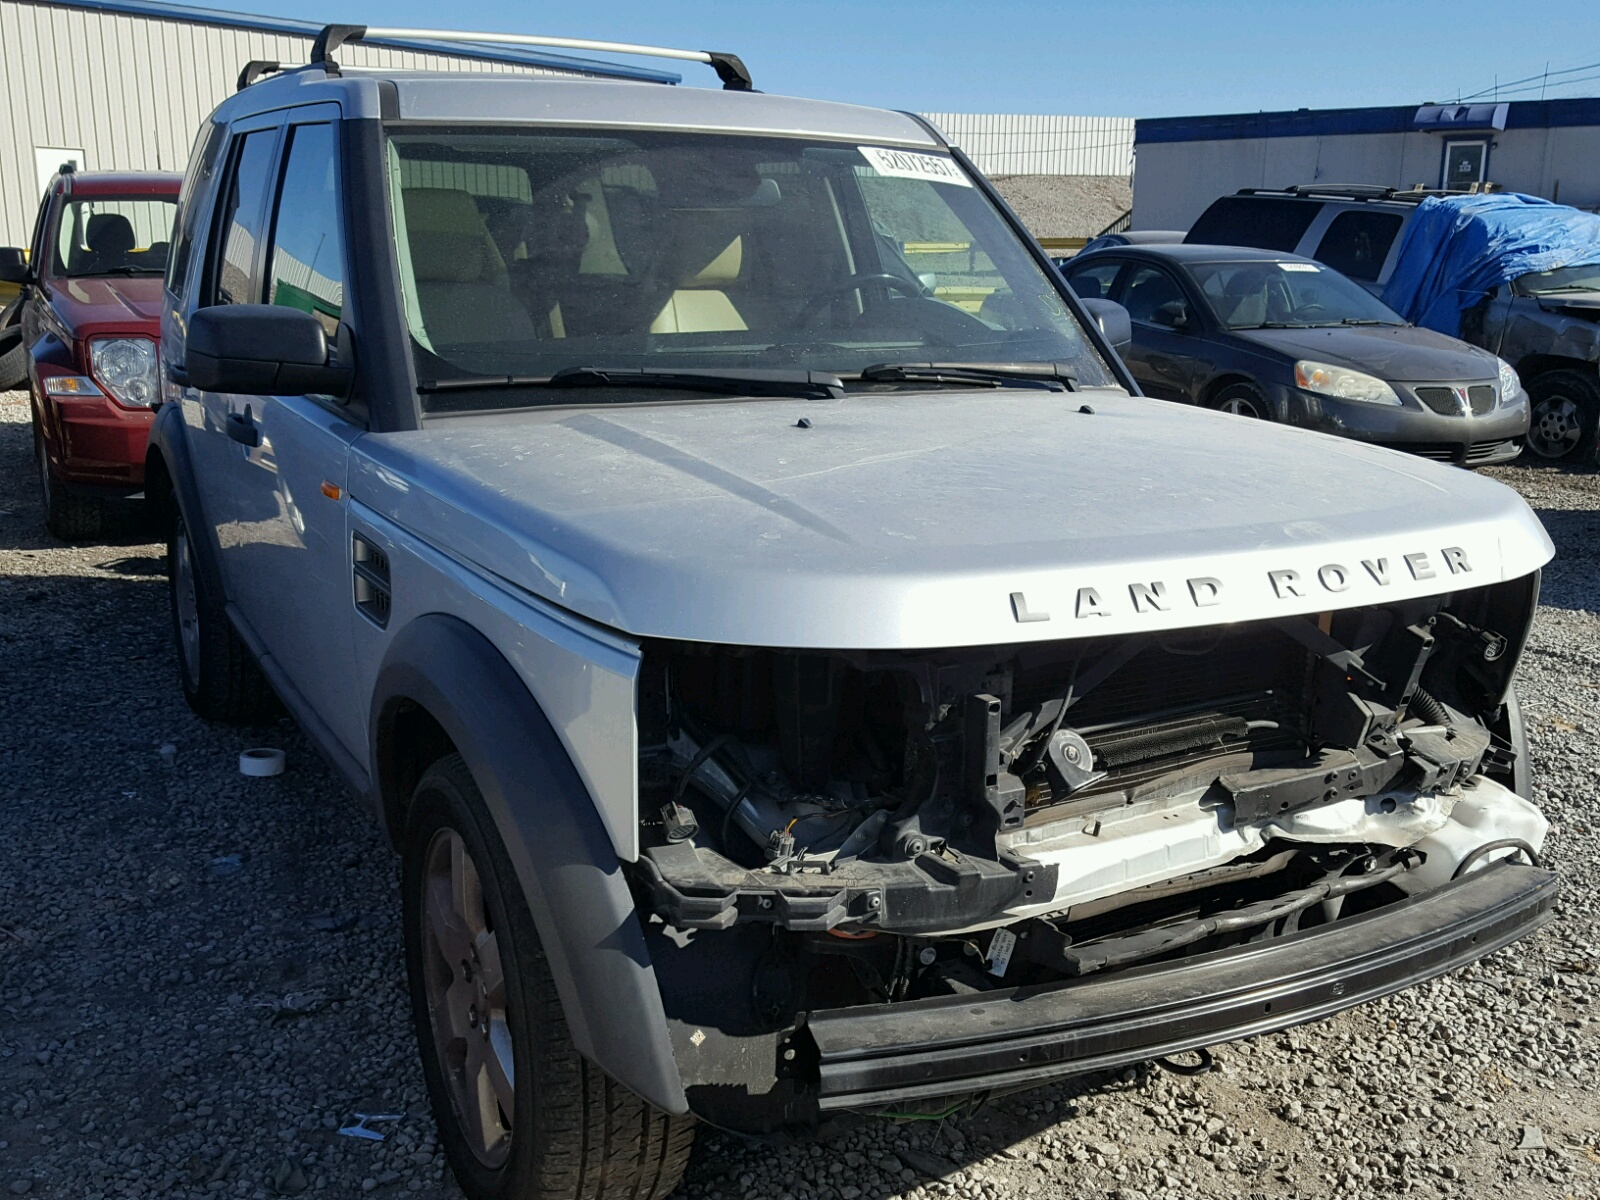 copart auto en auctions al salvage for lot on carfinder cert title birmingham rover silver of online landrover hse view right in sale land